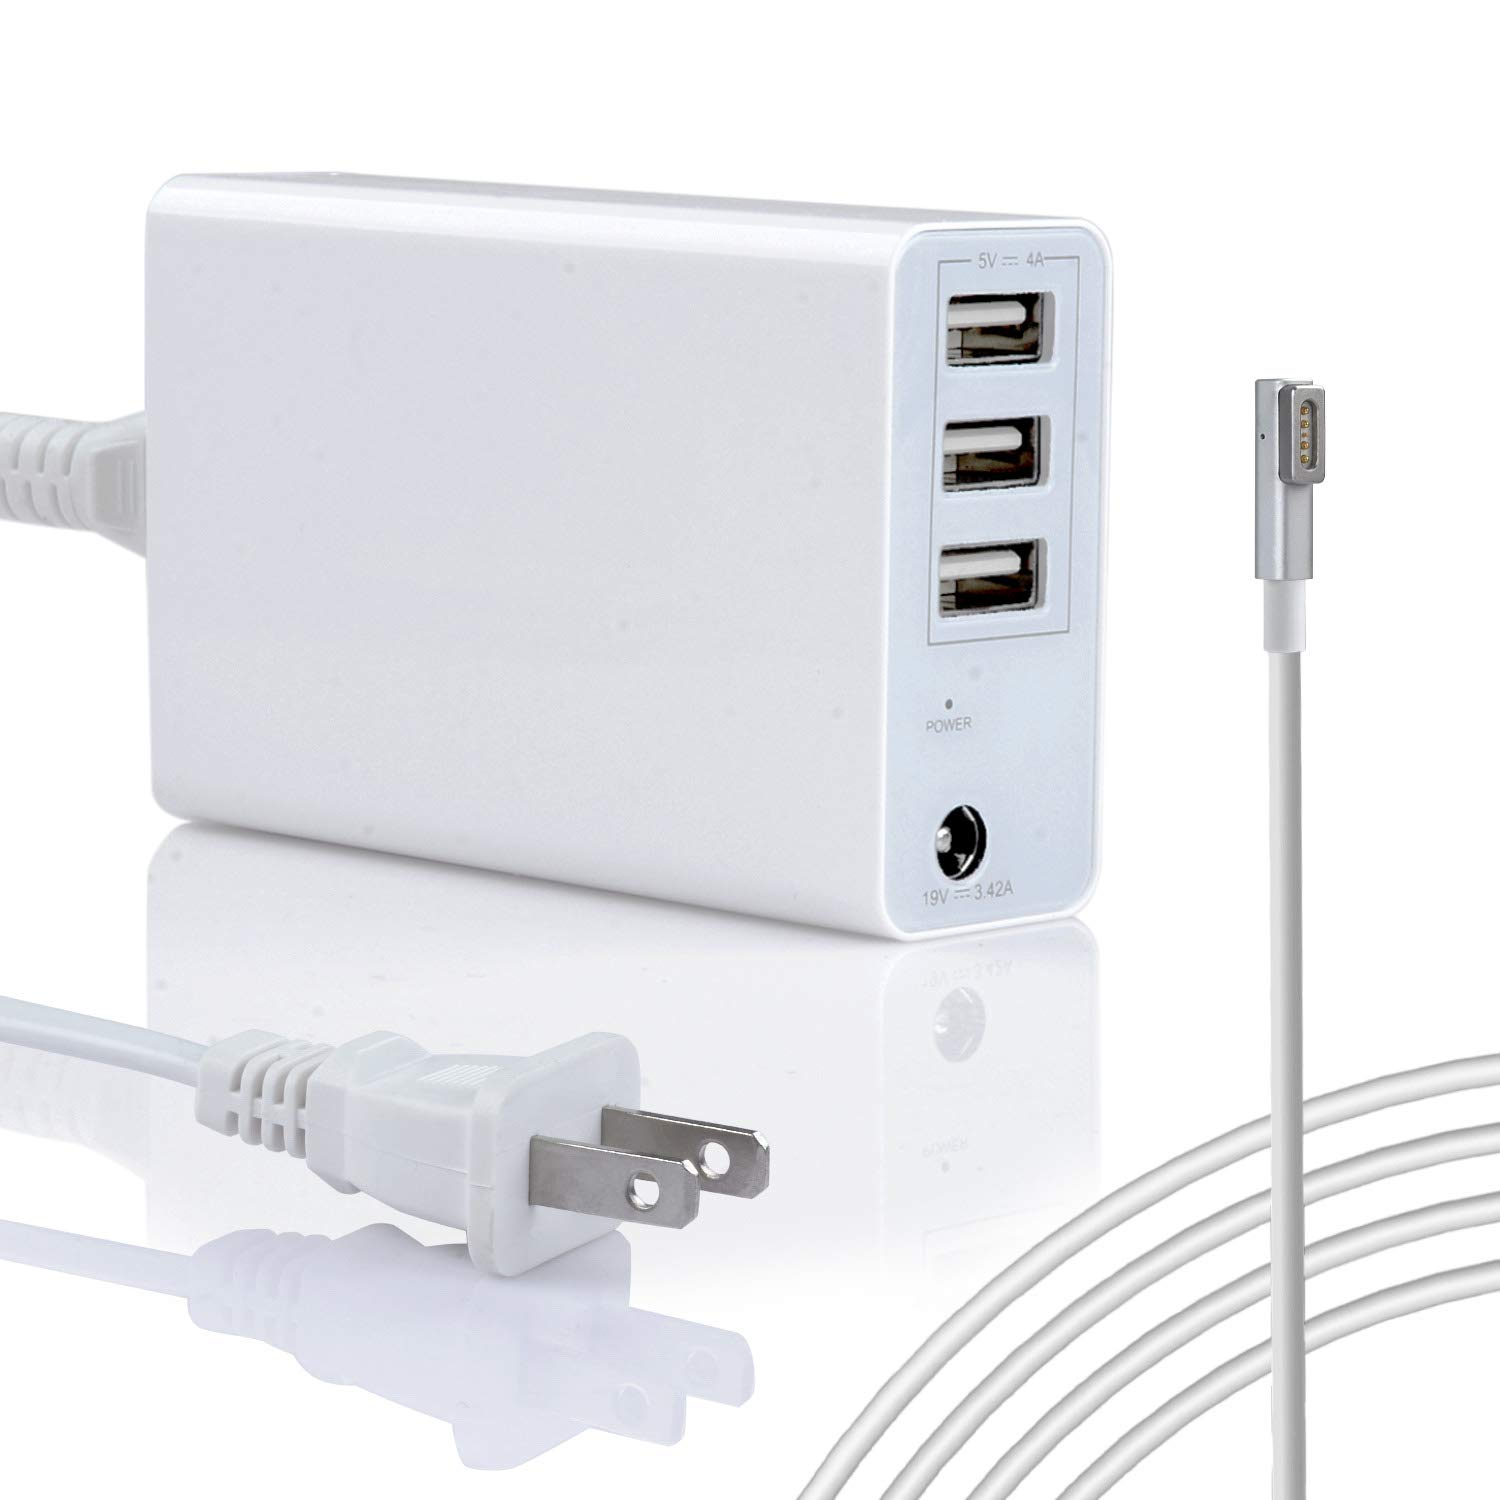 45W/60W Charger for Apple MacBook Pro/Air 11 13 inch Made Before Mid 2012,  Replacement for Magsafe 1 L-Tip Power Adapter w/ 3USB Ports